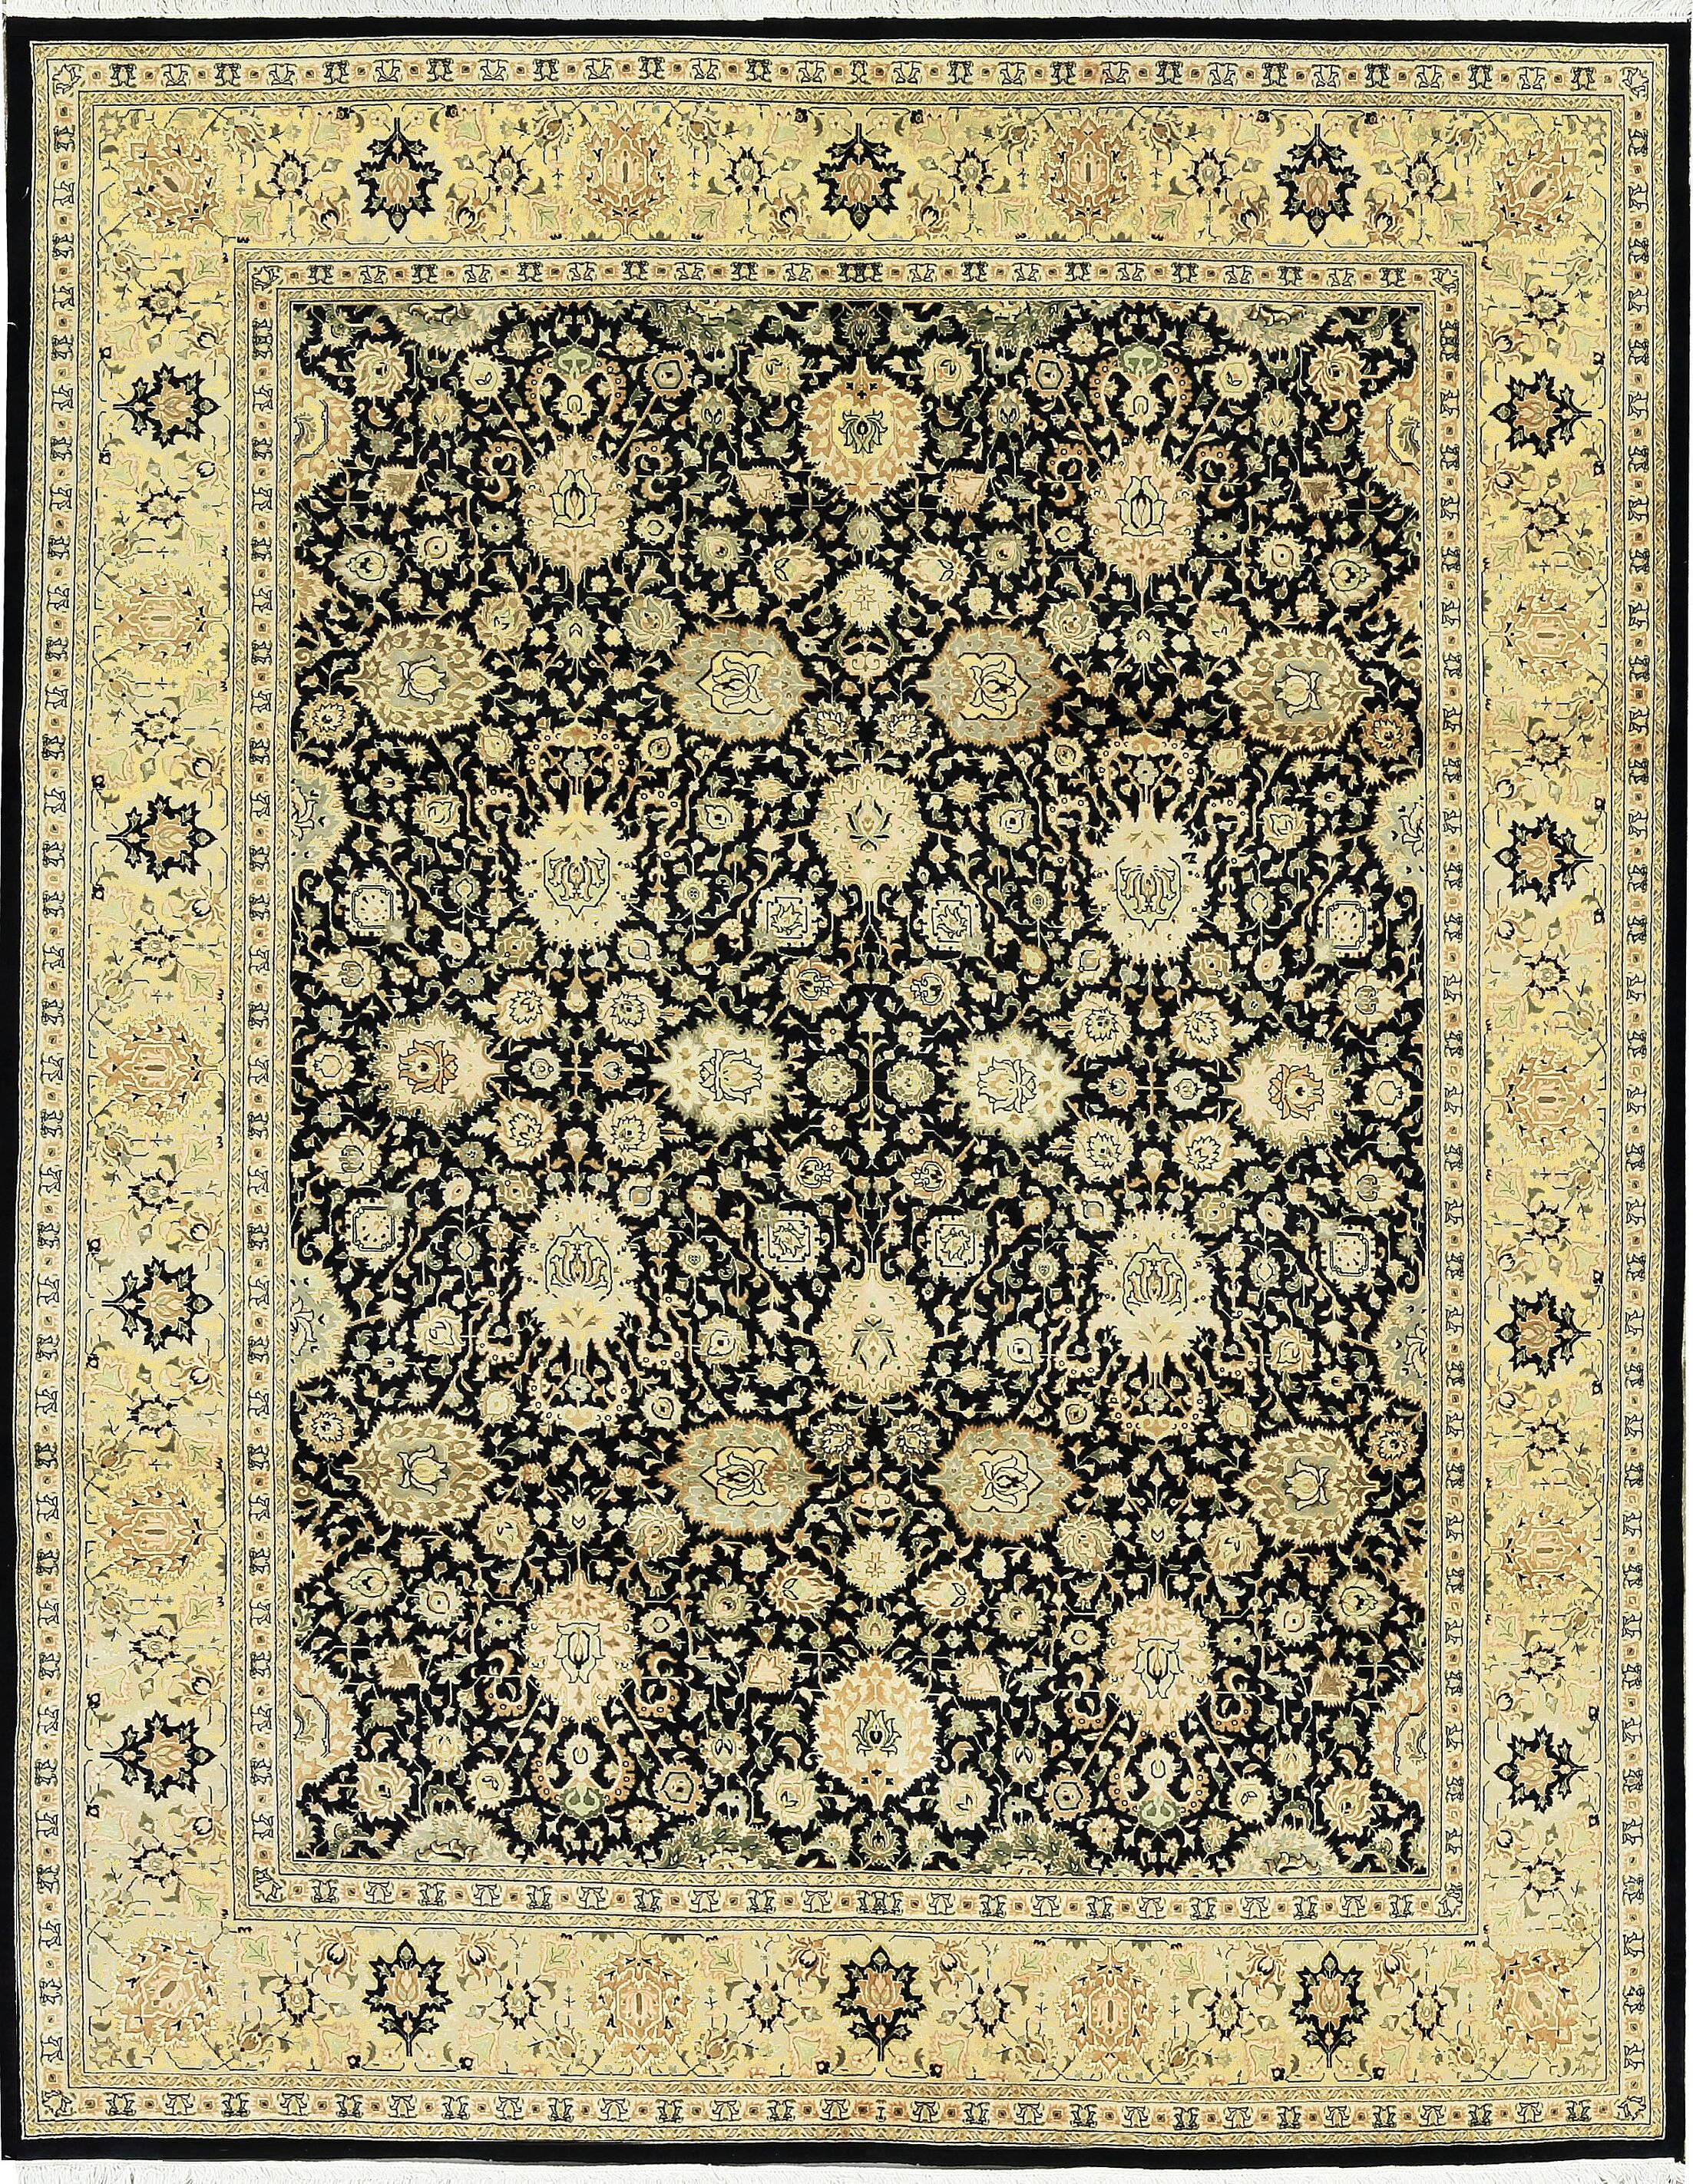 One-of-a-Kind Hand-Knotted Worsted Wool Black/Gold Area Rug